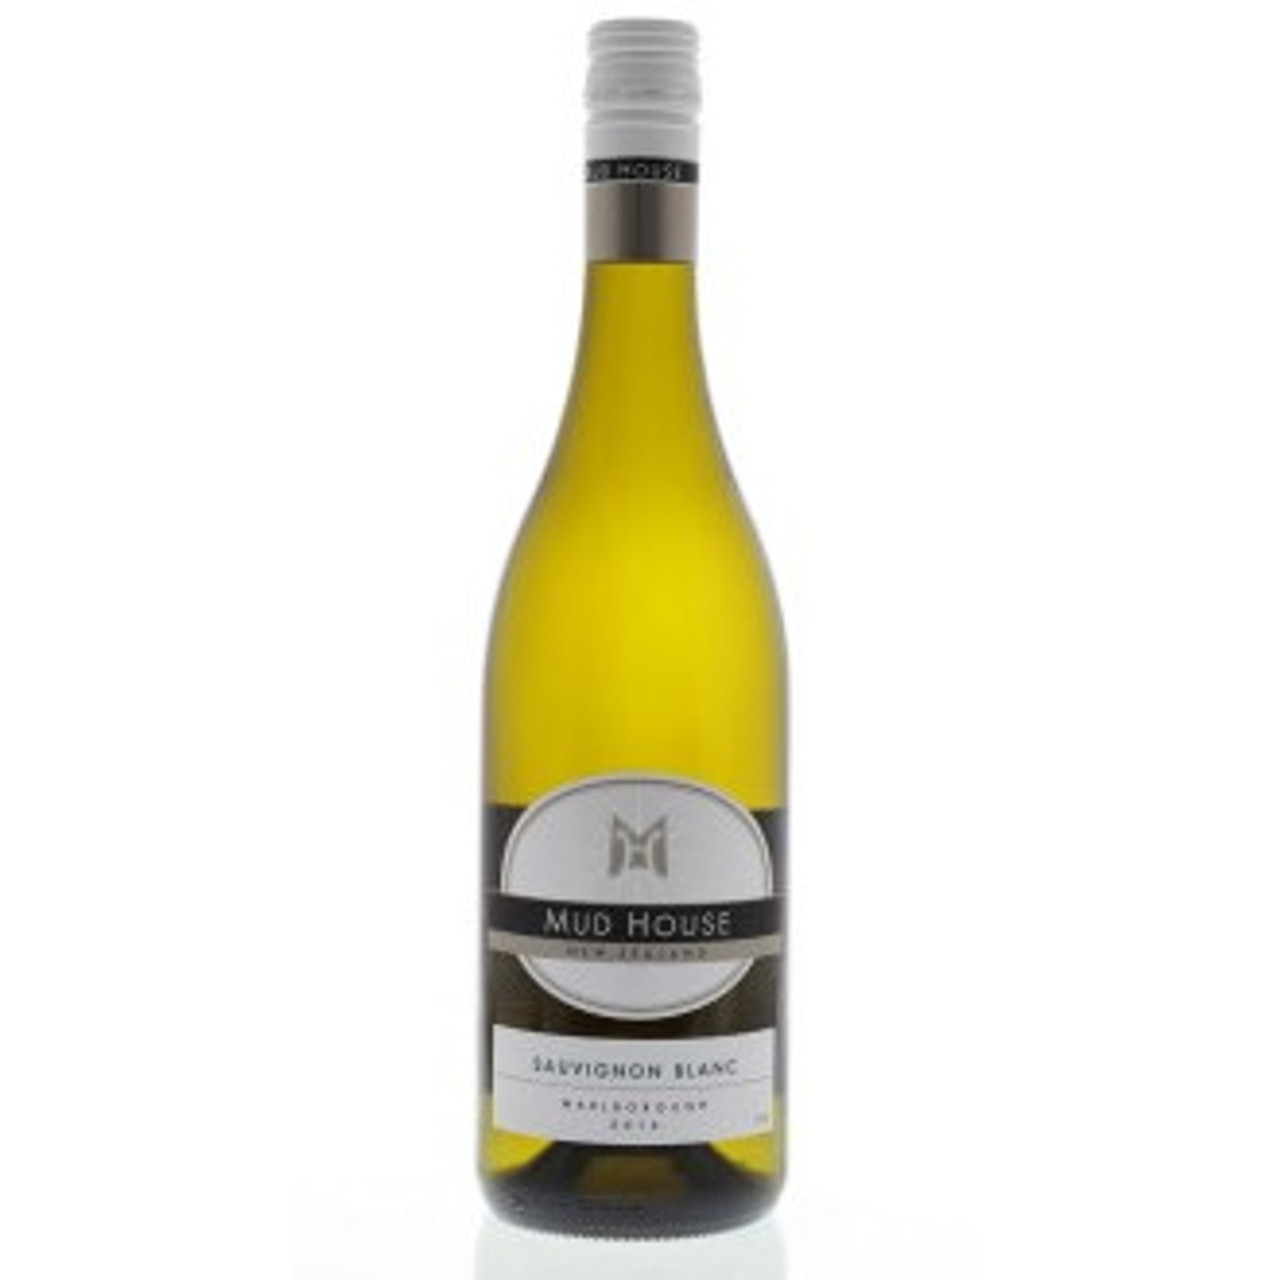 MUD HOUSE Sauvignon Blanc Marlborough 2017